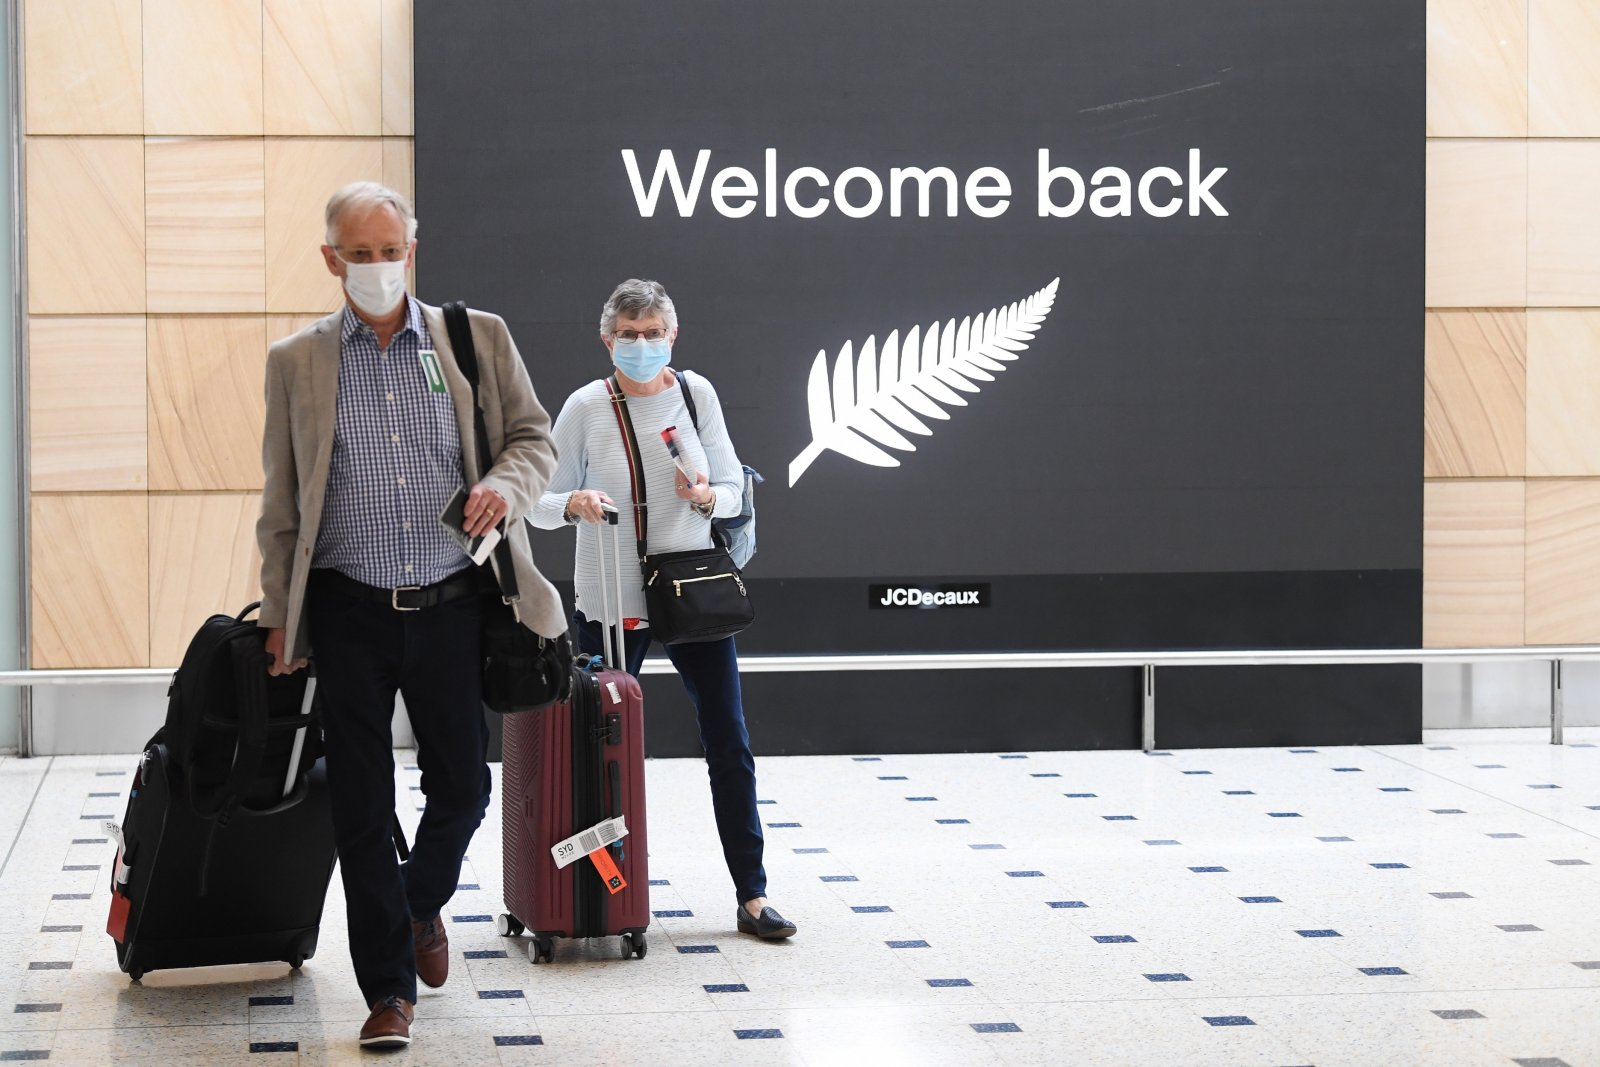 Passengers from New Zealand arrive at Sydney International Airport on Friday-visa-news-rospersonal-Mikhaylov-Evgeny-Matveevich-Immigration-Agent-Moscow.jpeg